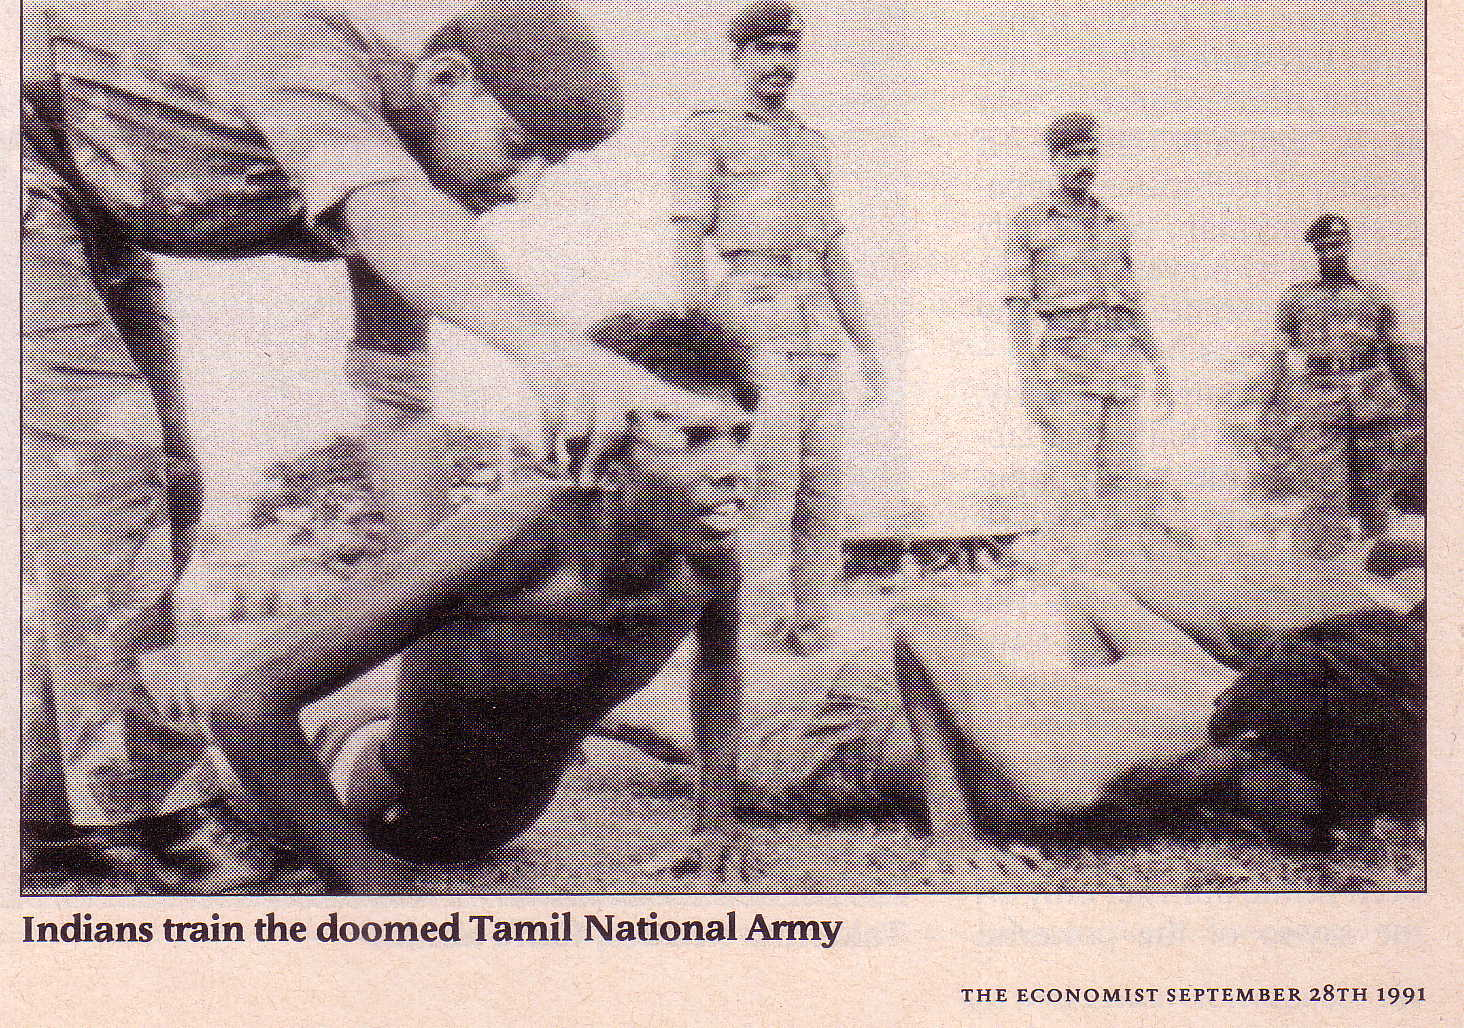 Indians training Tamil National Army